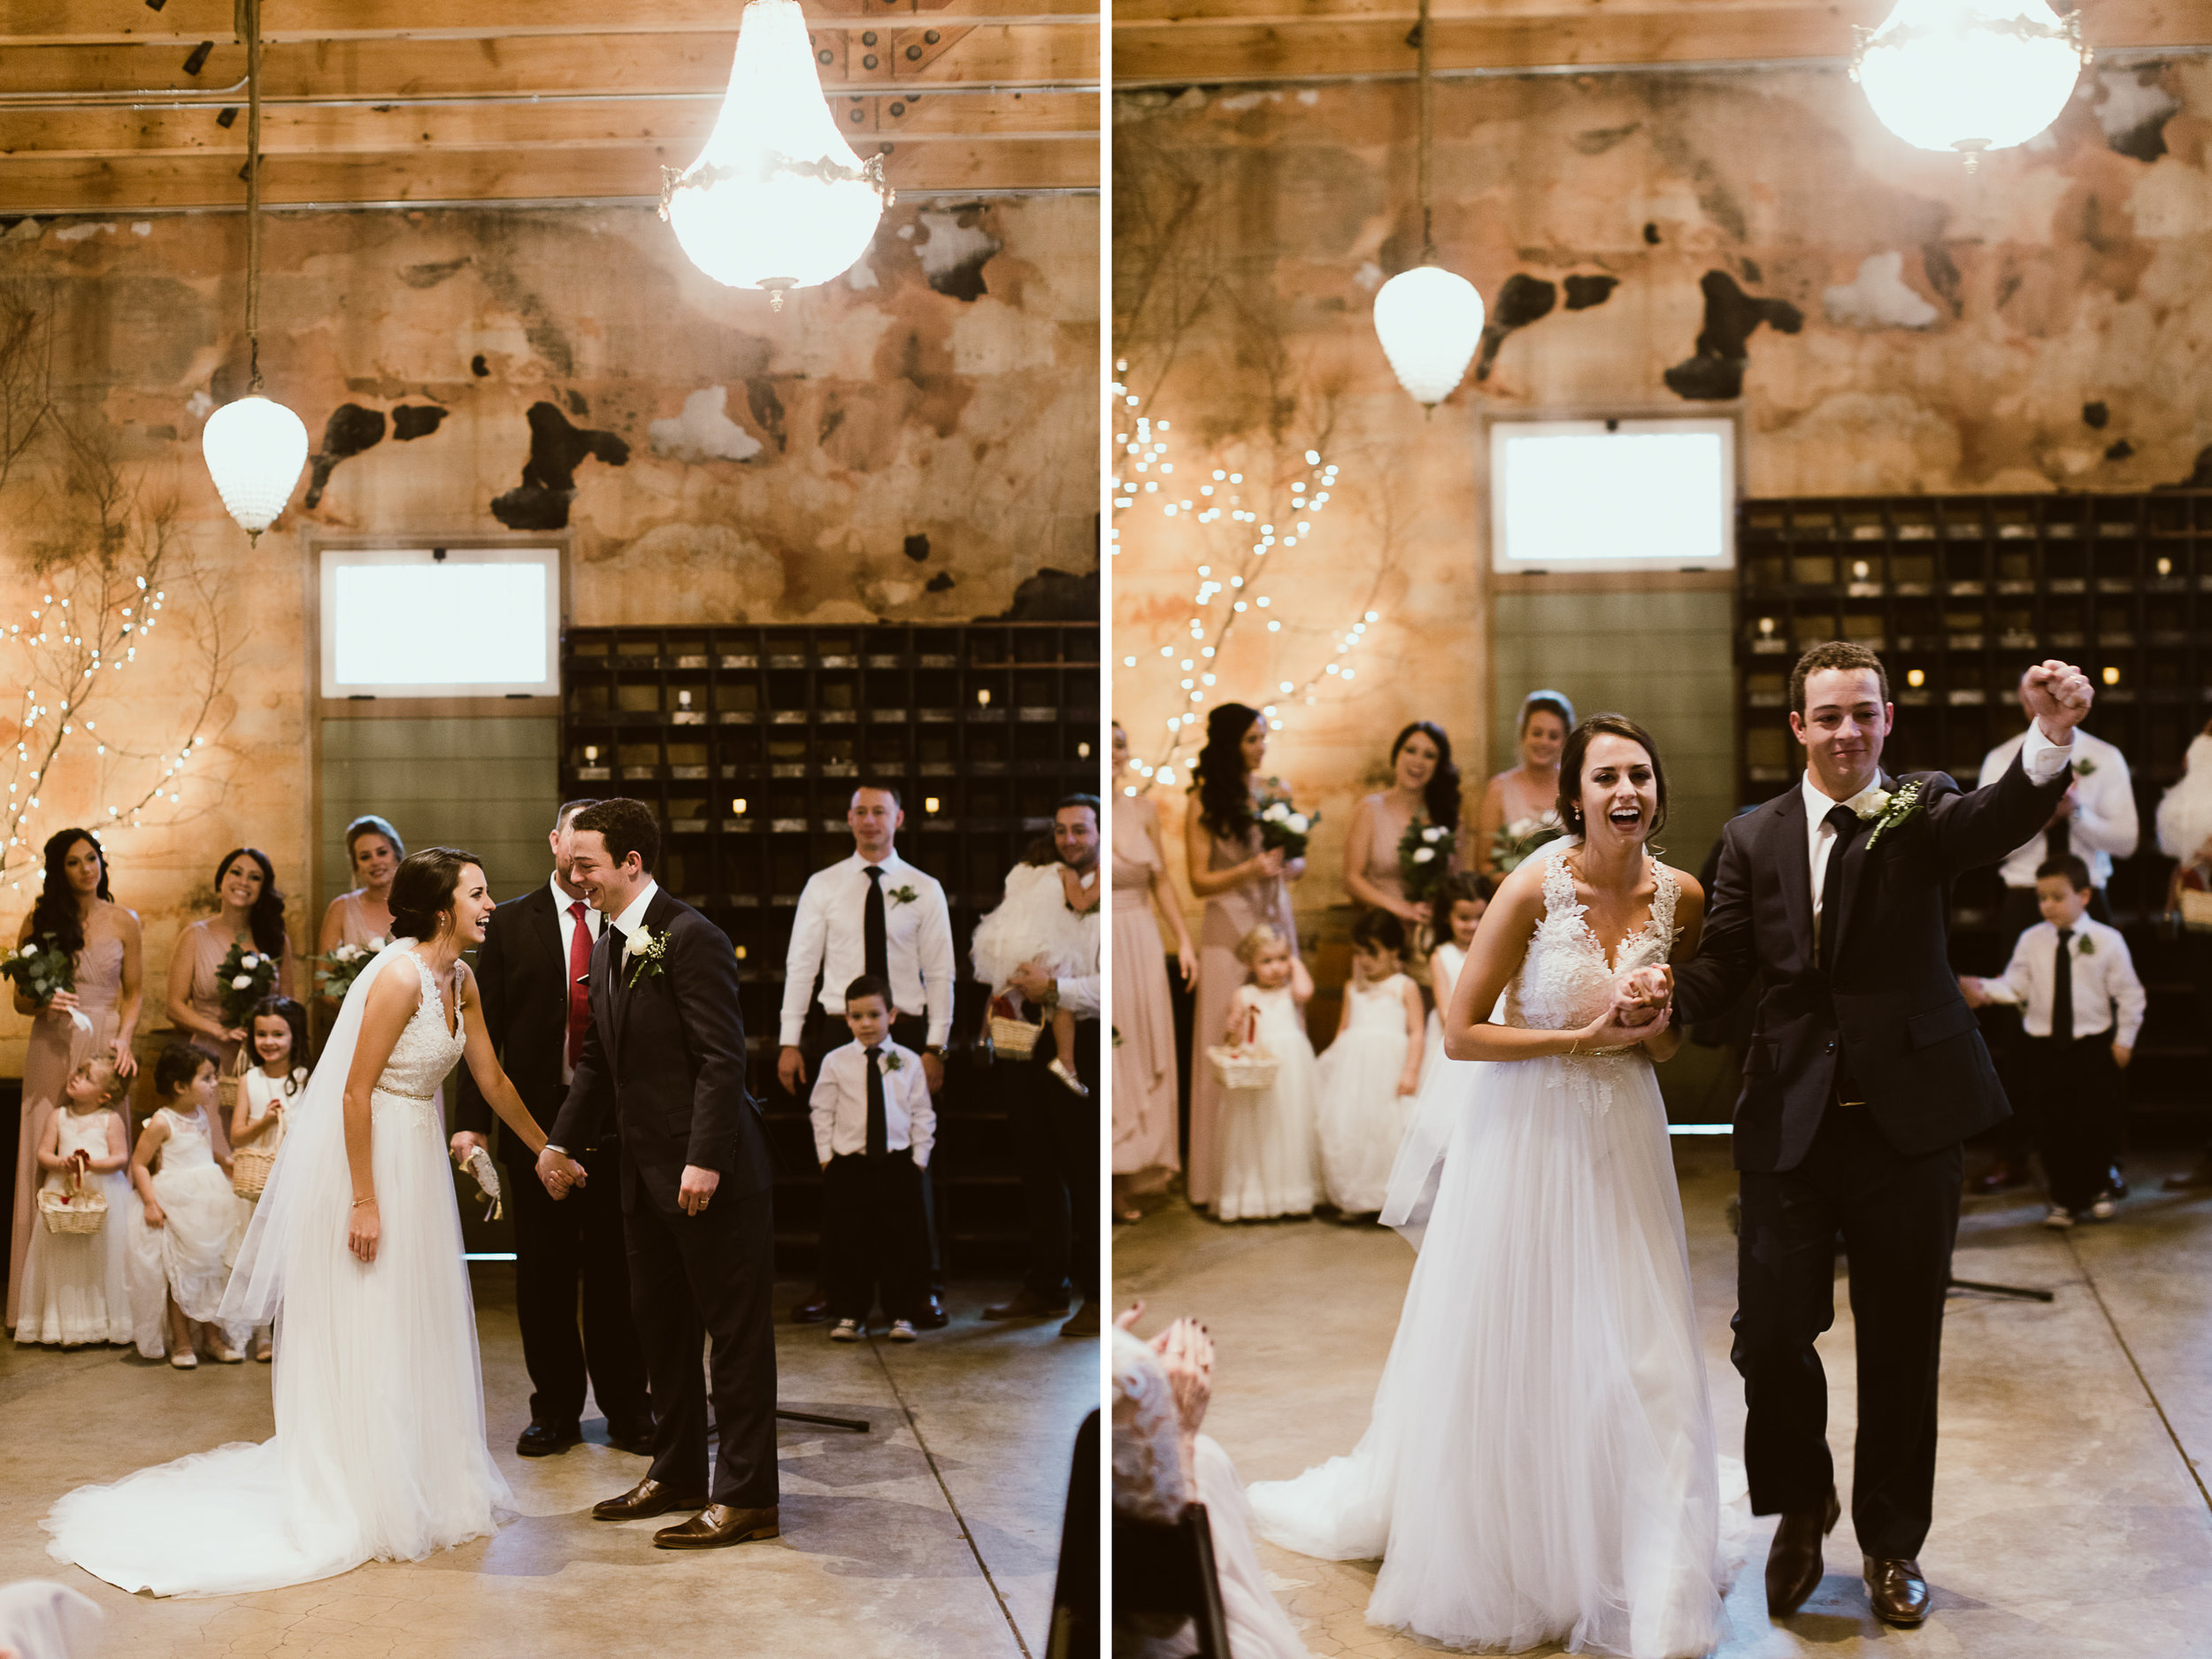 romantic winter wedding in comfort, texas // ingenhuett on high // adventure wedding photographer // www.abbihearne.com